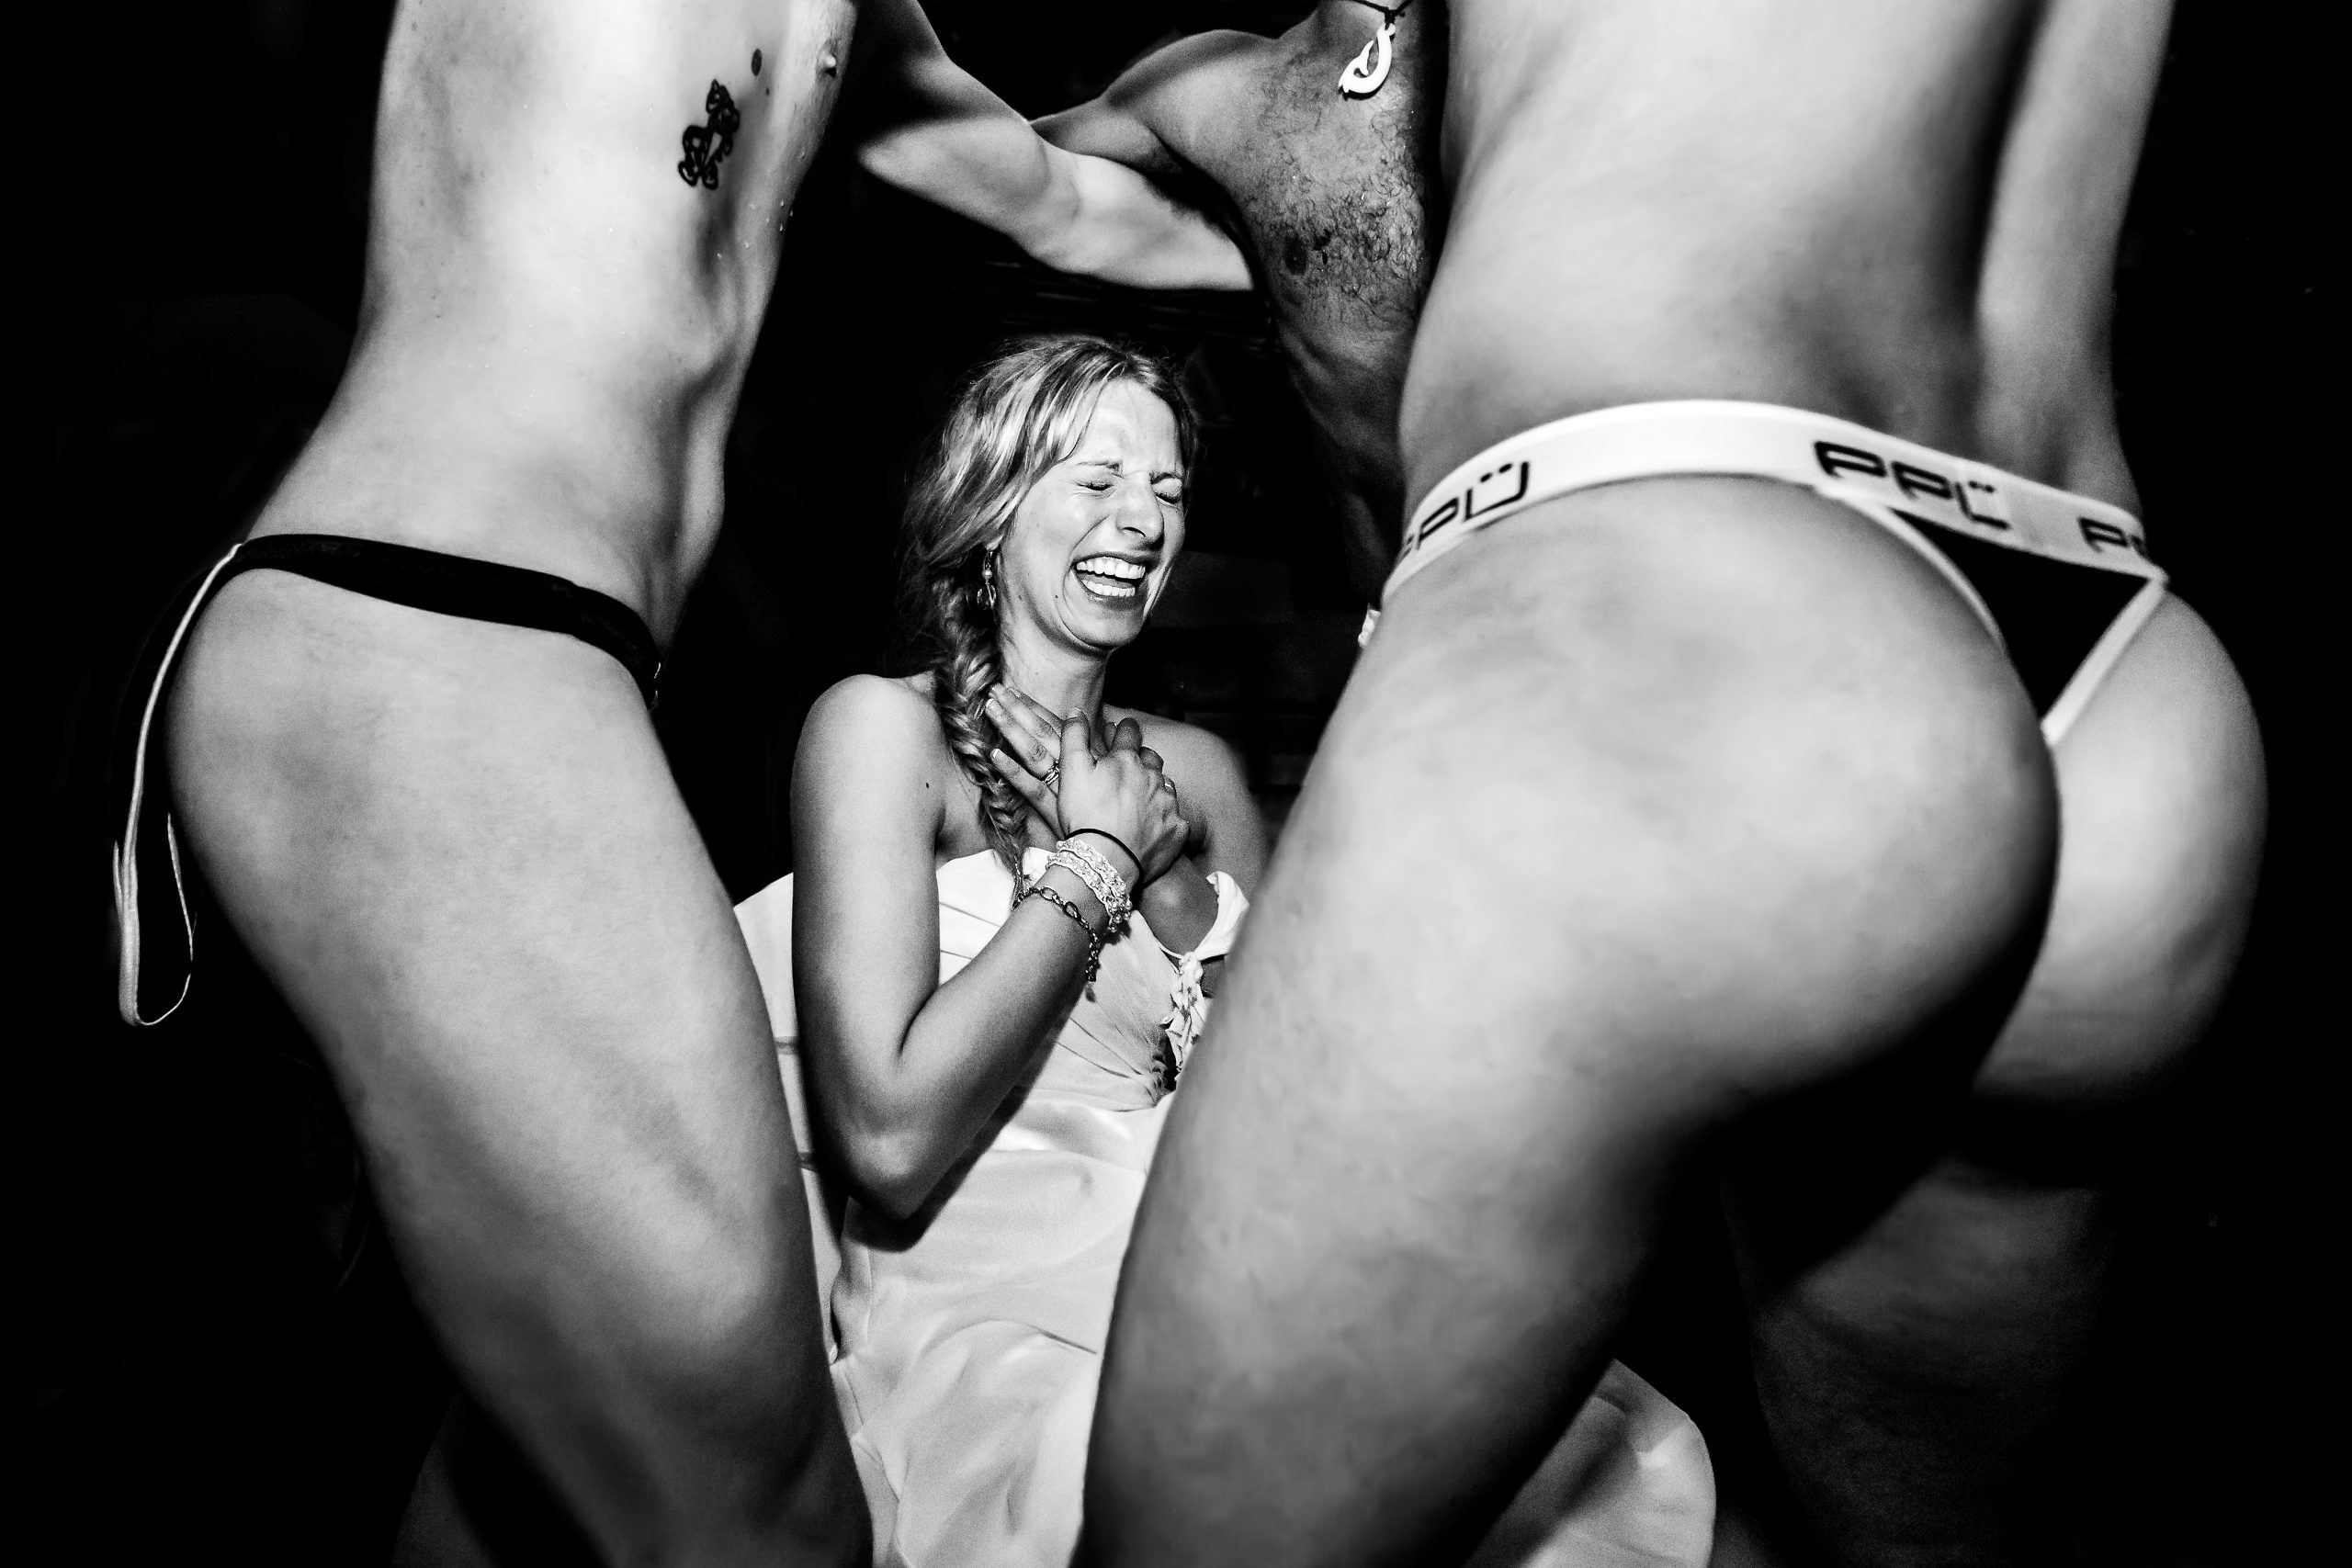 Bride display an embarrassed facial expression because of two men in their underwear